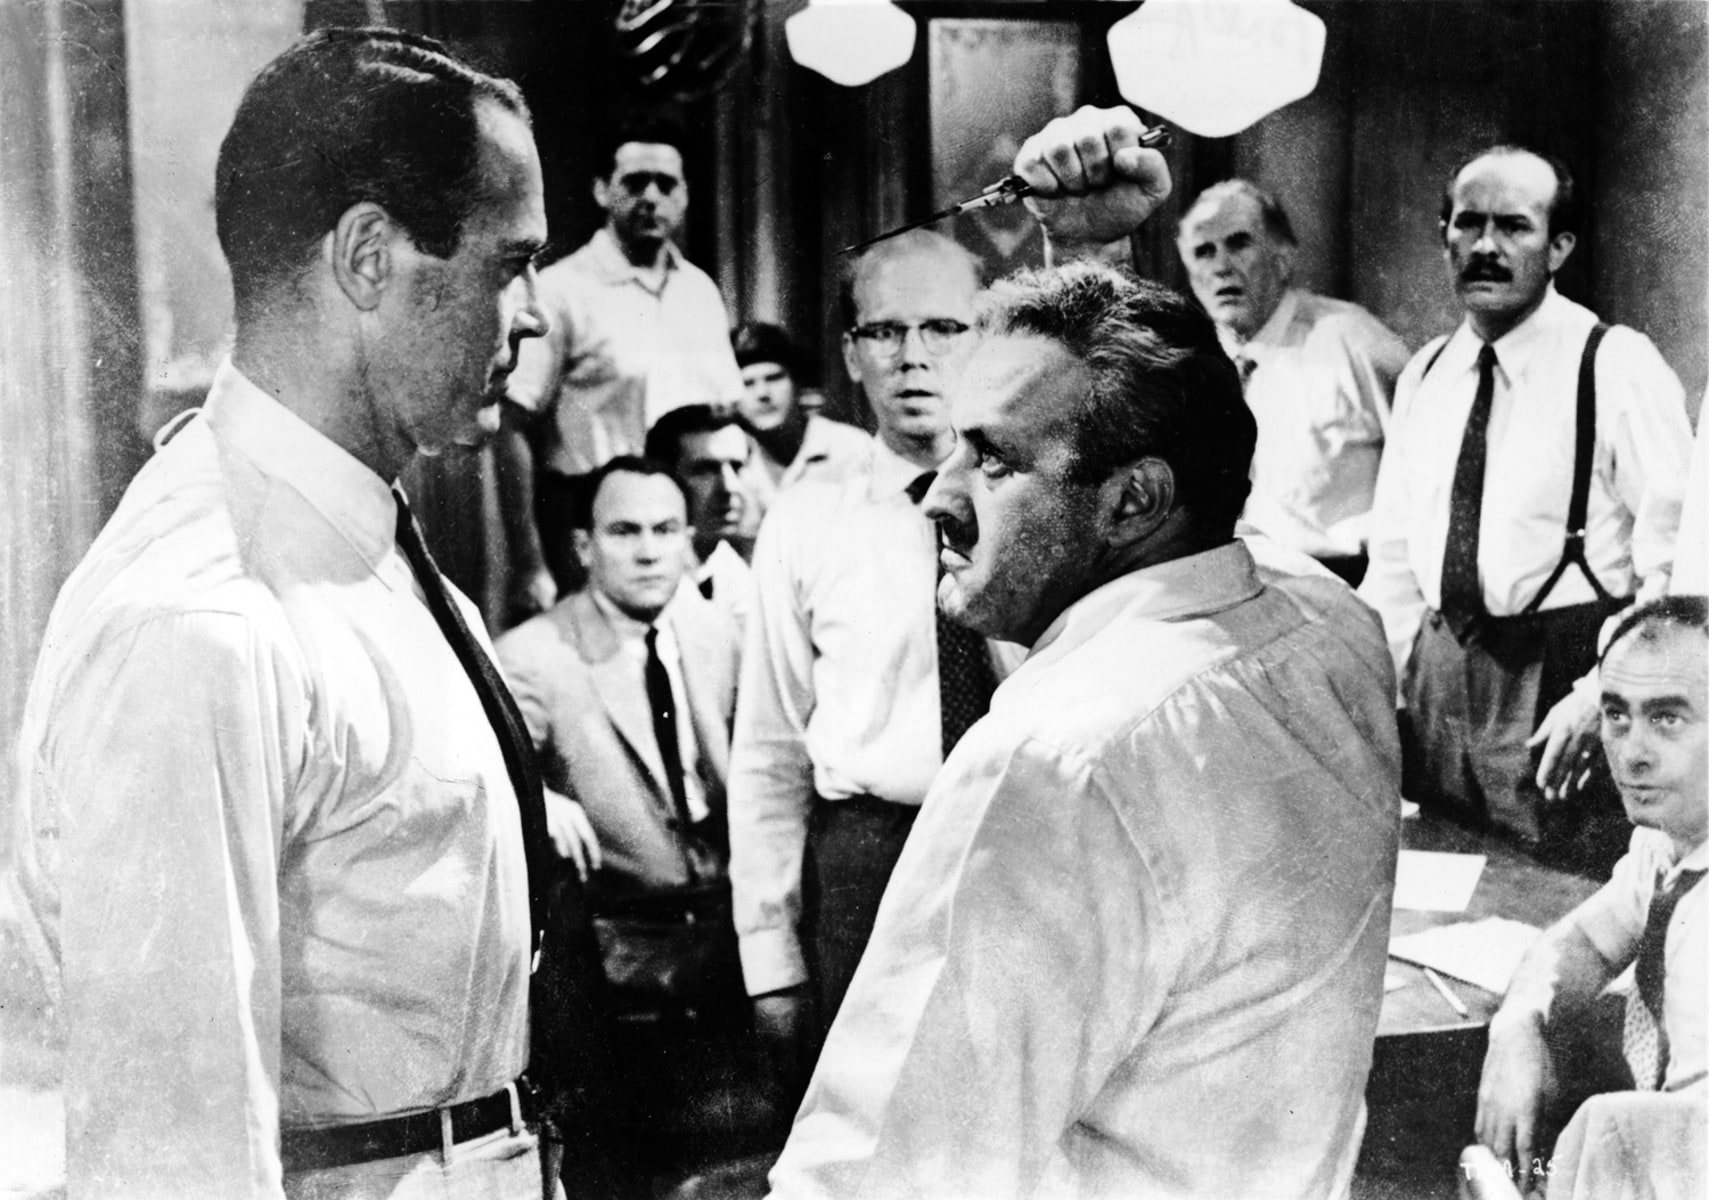 12 angry men juror 3 Prejudice, fair justice - comparing and contrasting juror 3 and juror 8 from twelve angry men.